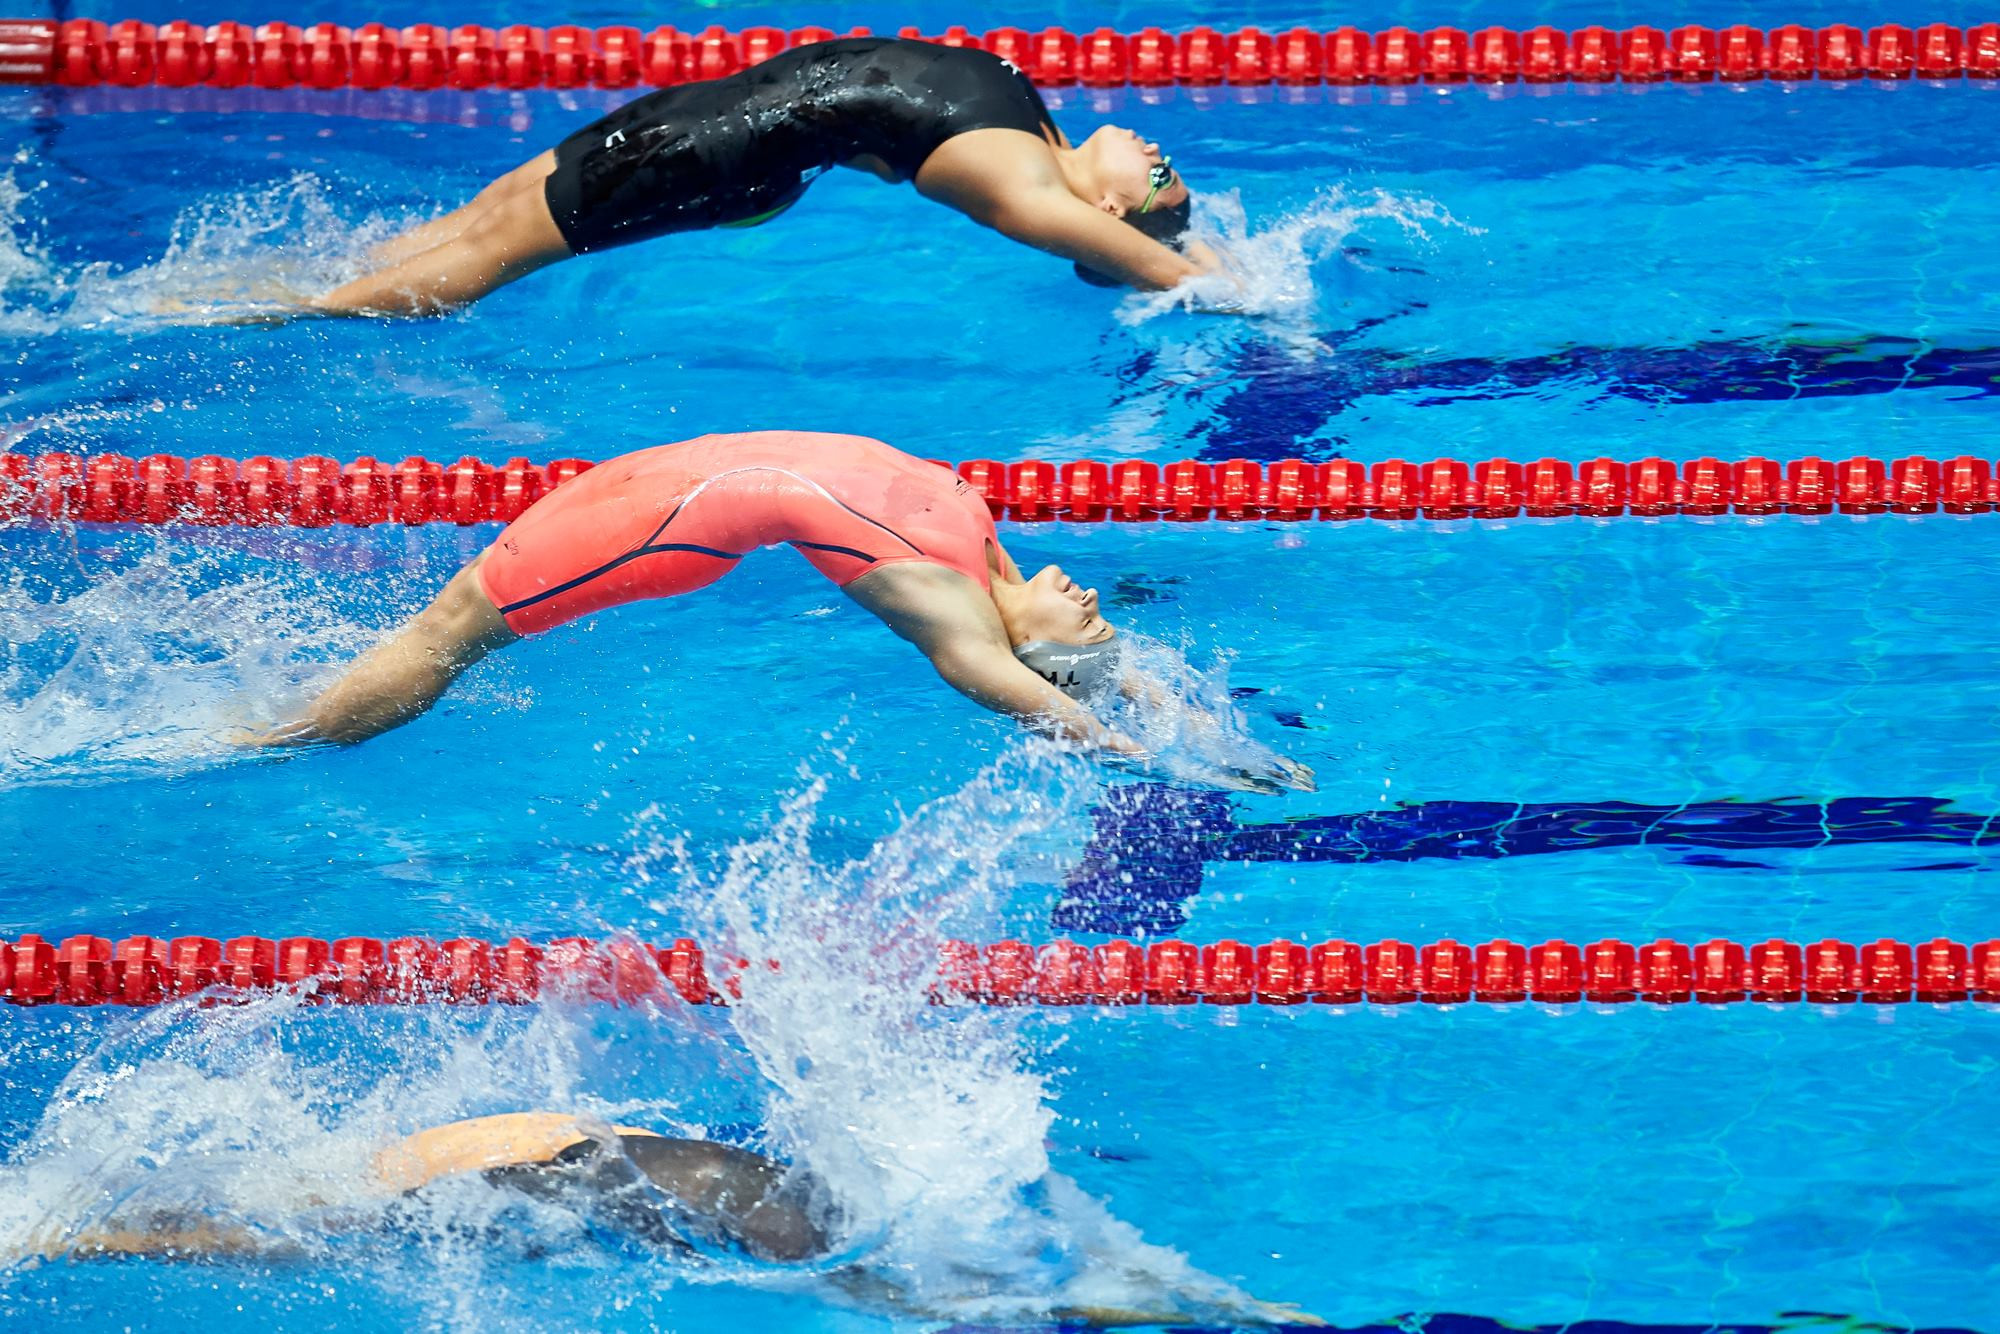 The women's 100 metres backstroke was one of eight short course swimming events held today ©Ashgabat 2017/Facebook